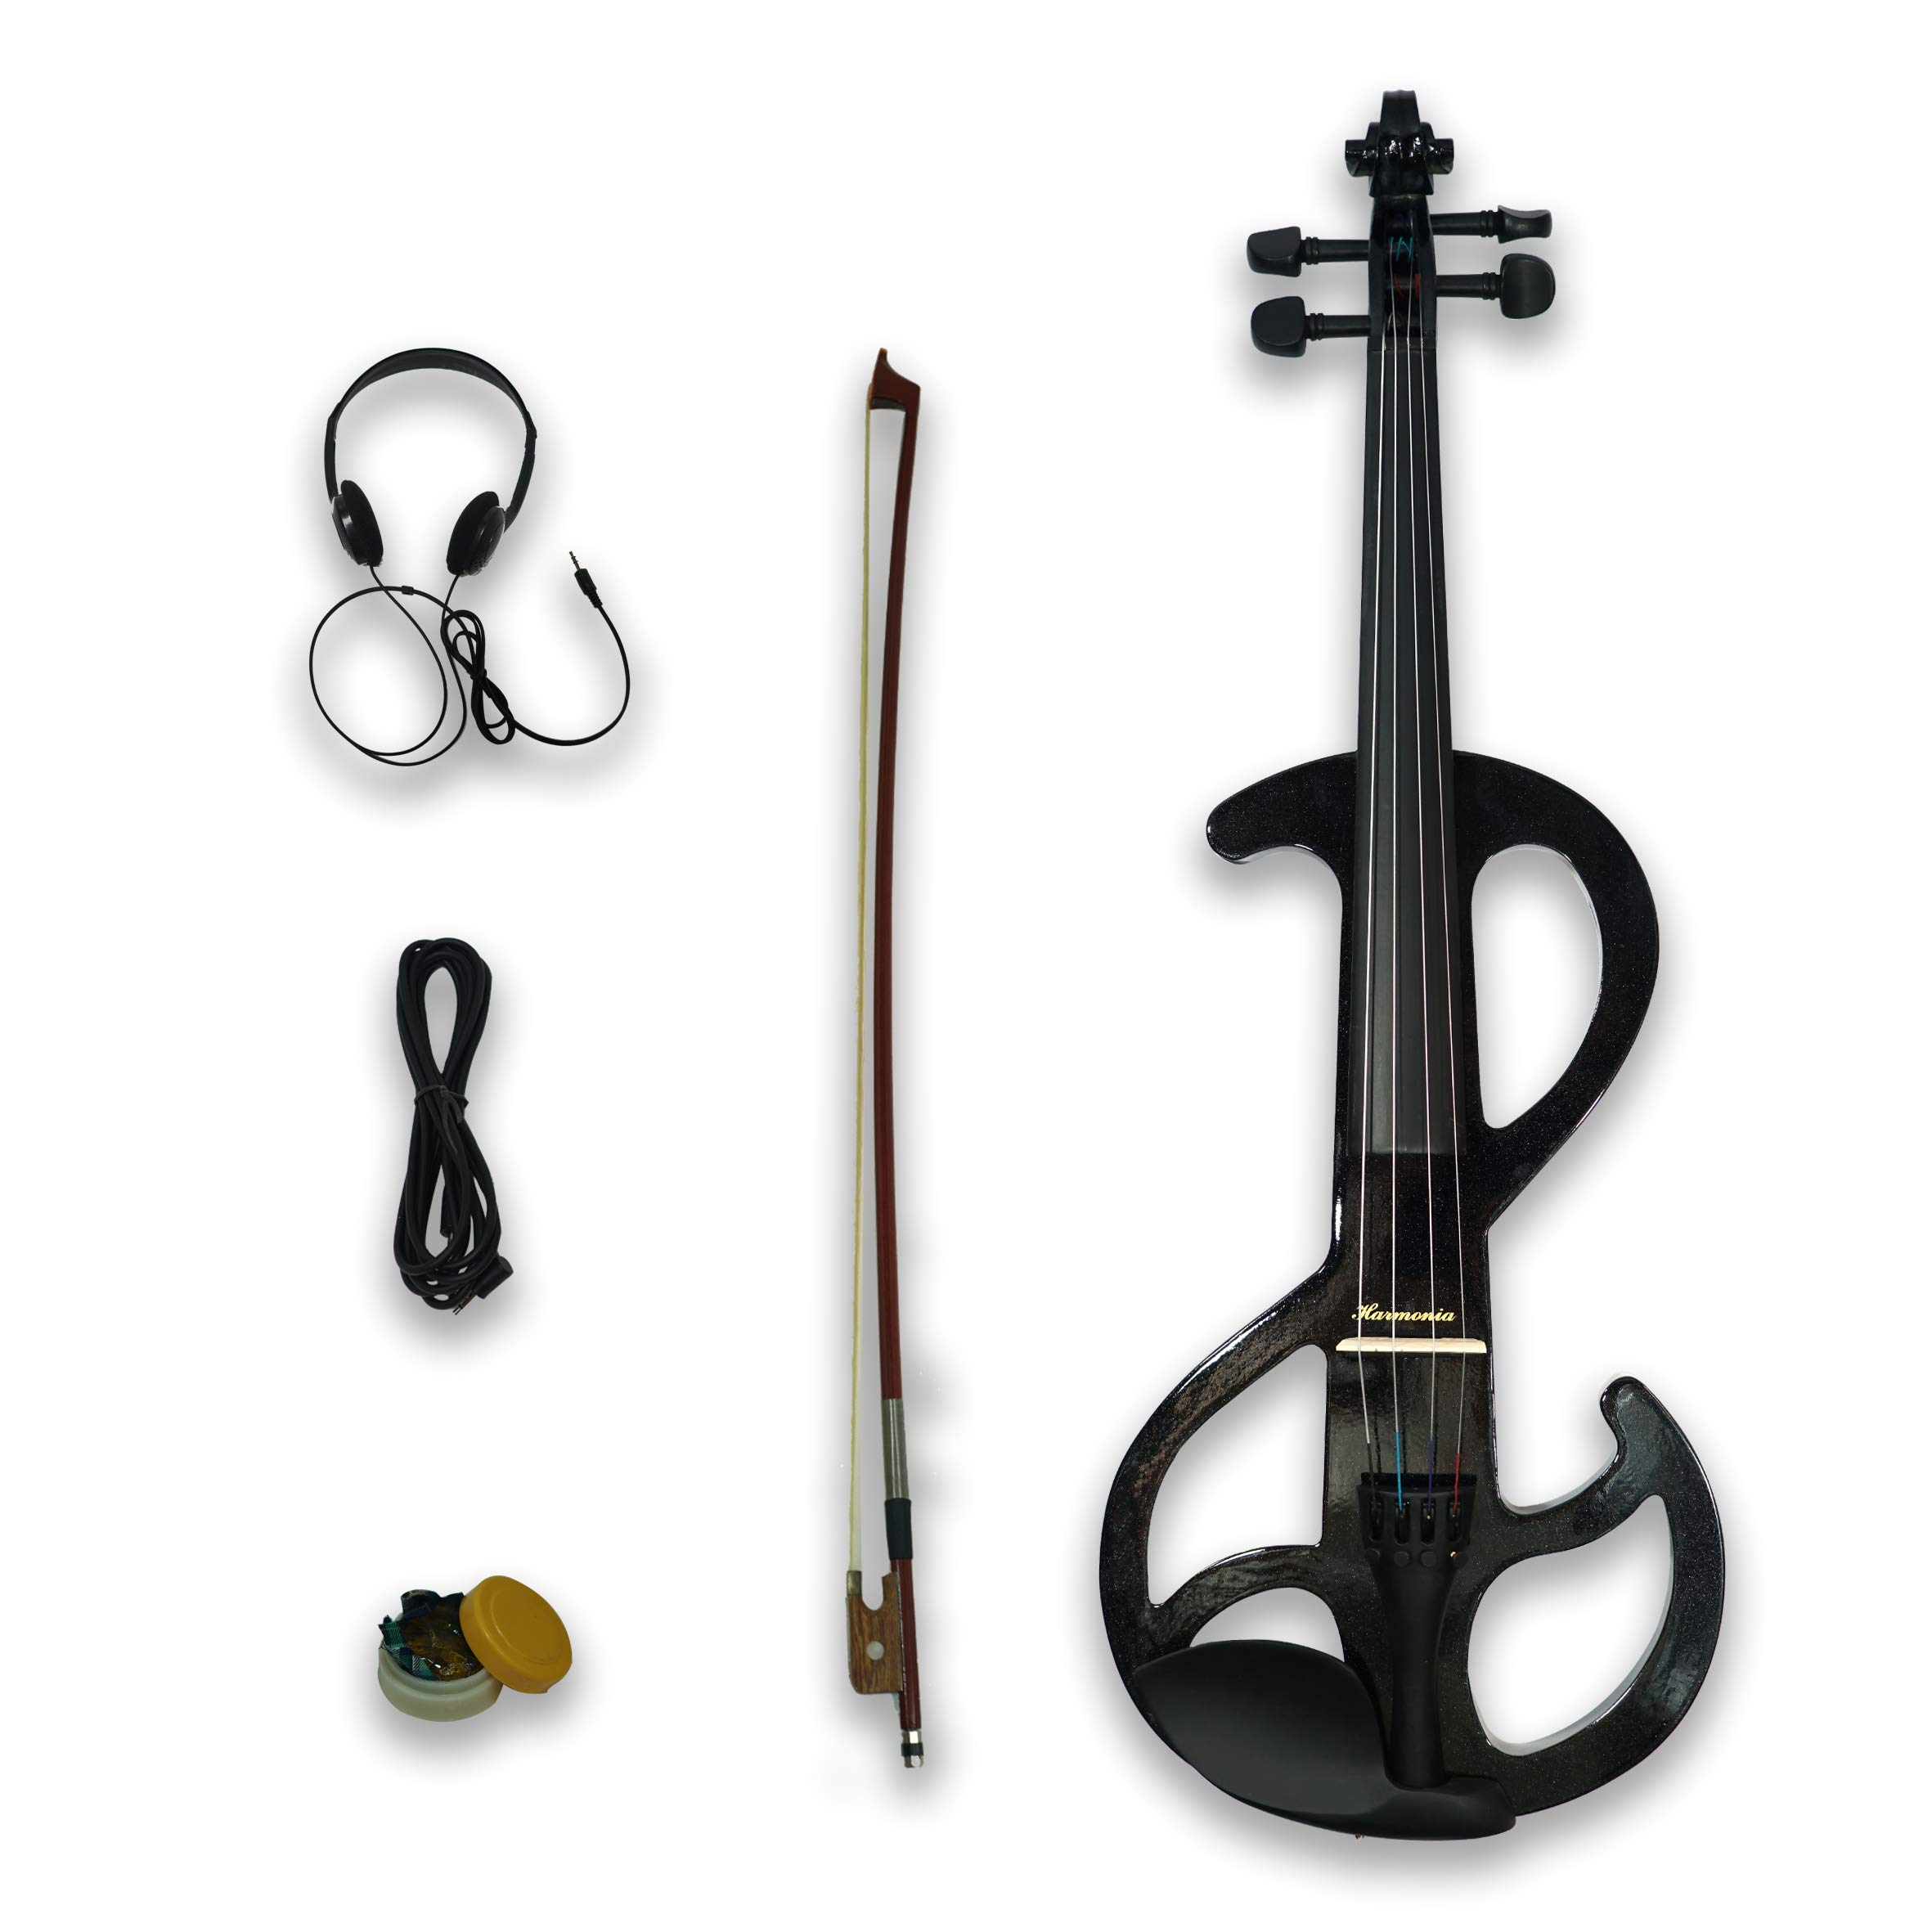 Electric Viola 4/4 S Style w/Case, Bow, Rosin, Headphone, Cable & Battery by Harmonia